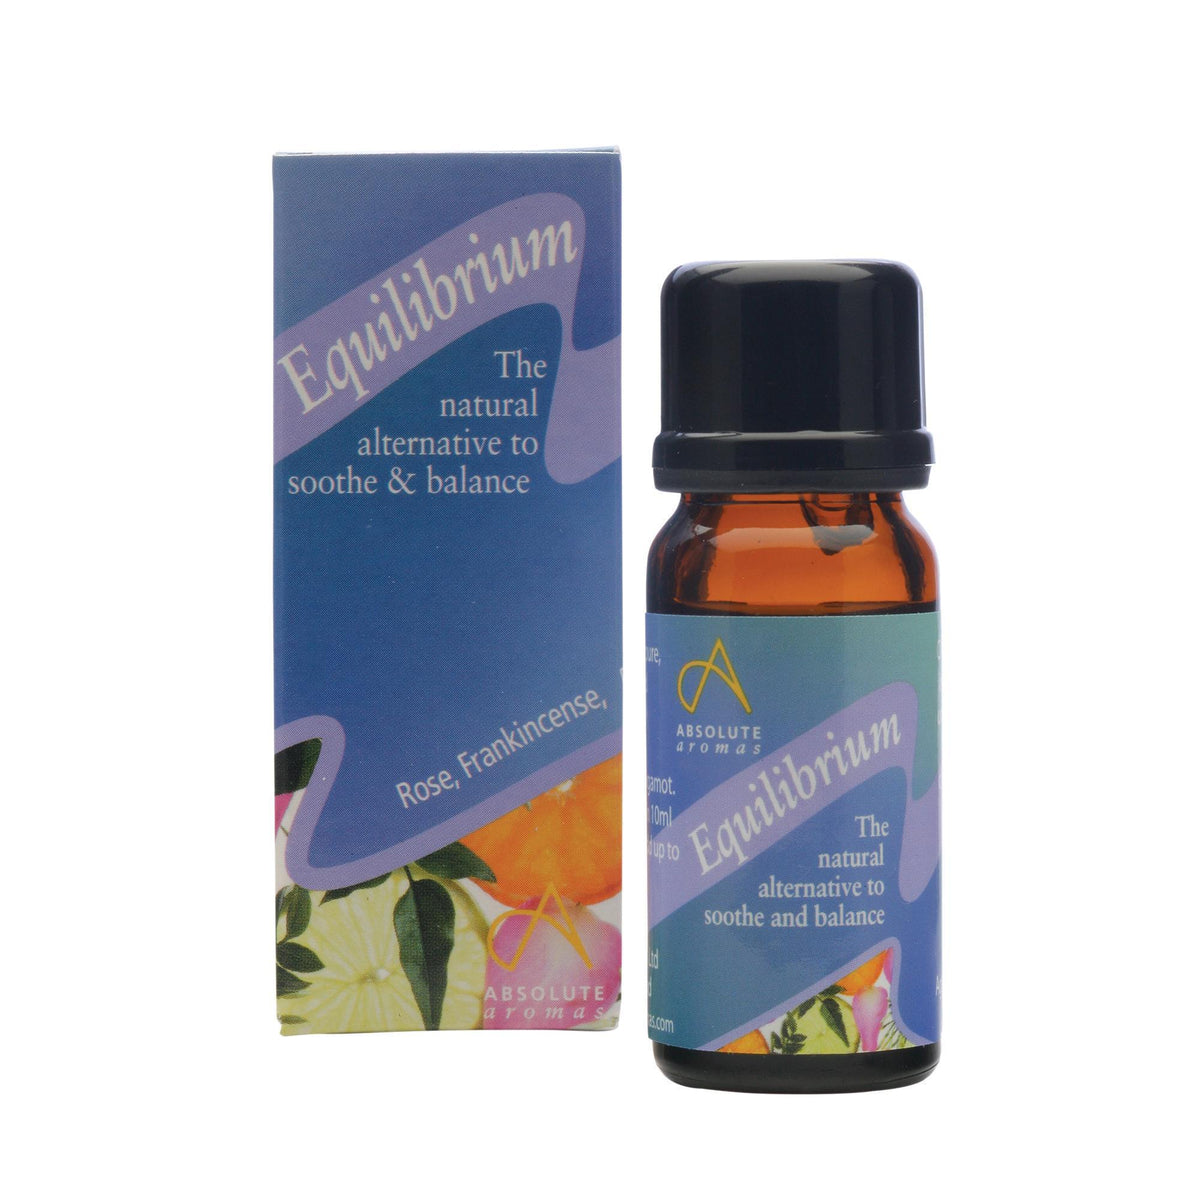 Absolute Aromas Equilibrium Aromatherapy Blend 0.33 Fl. Oz.